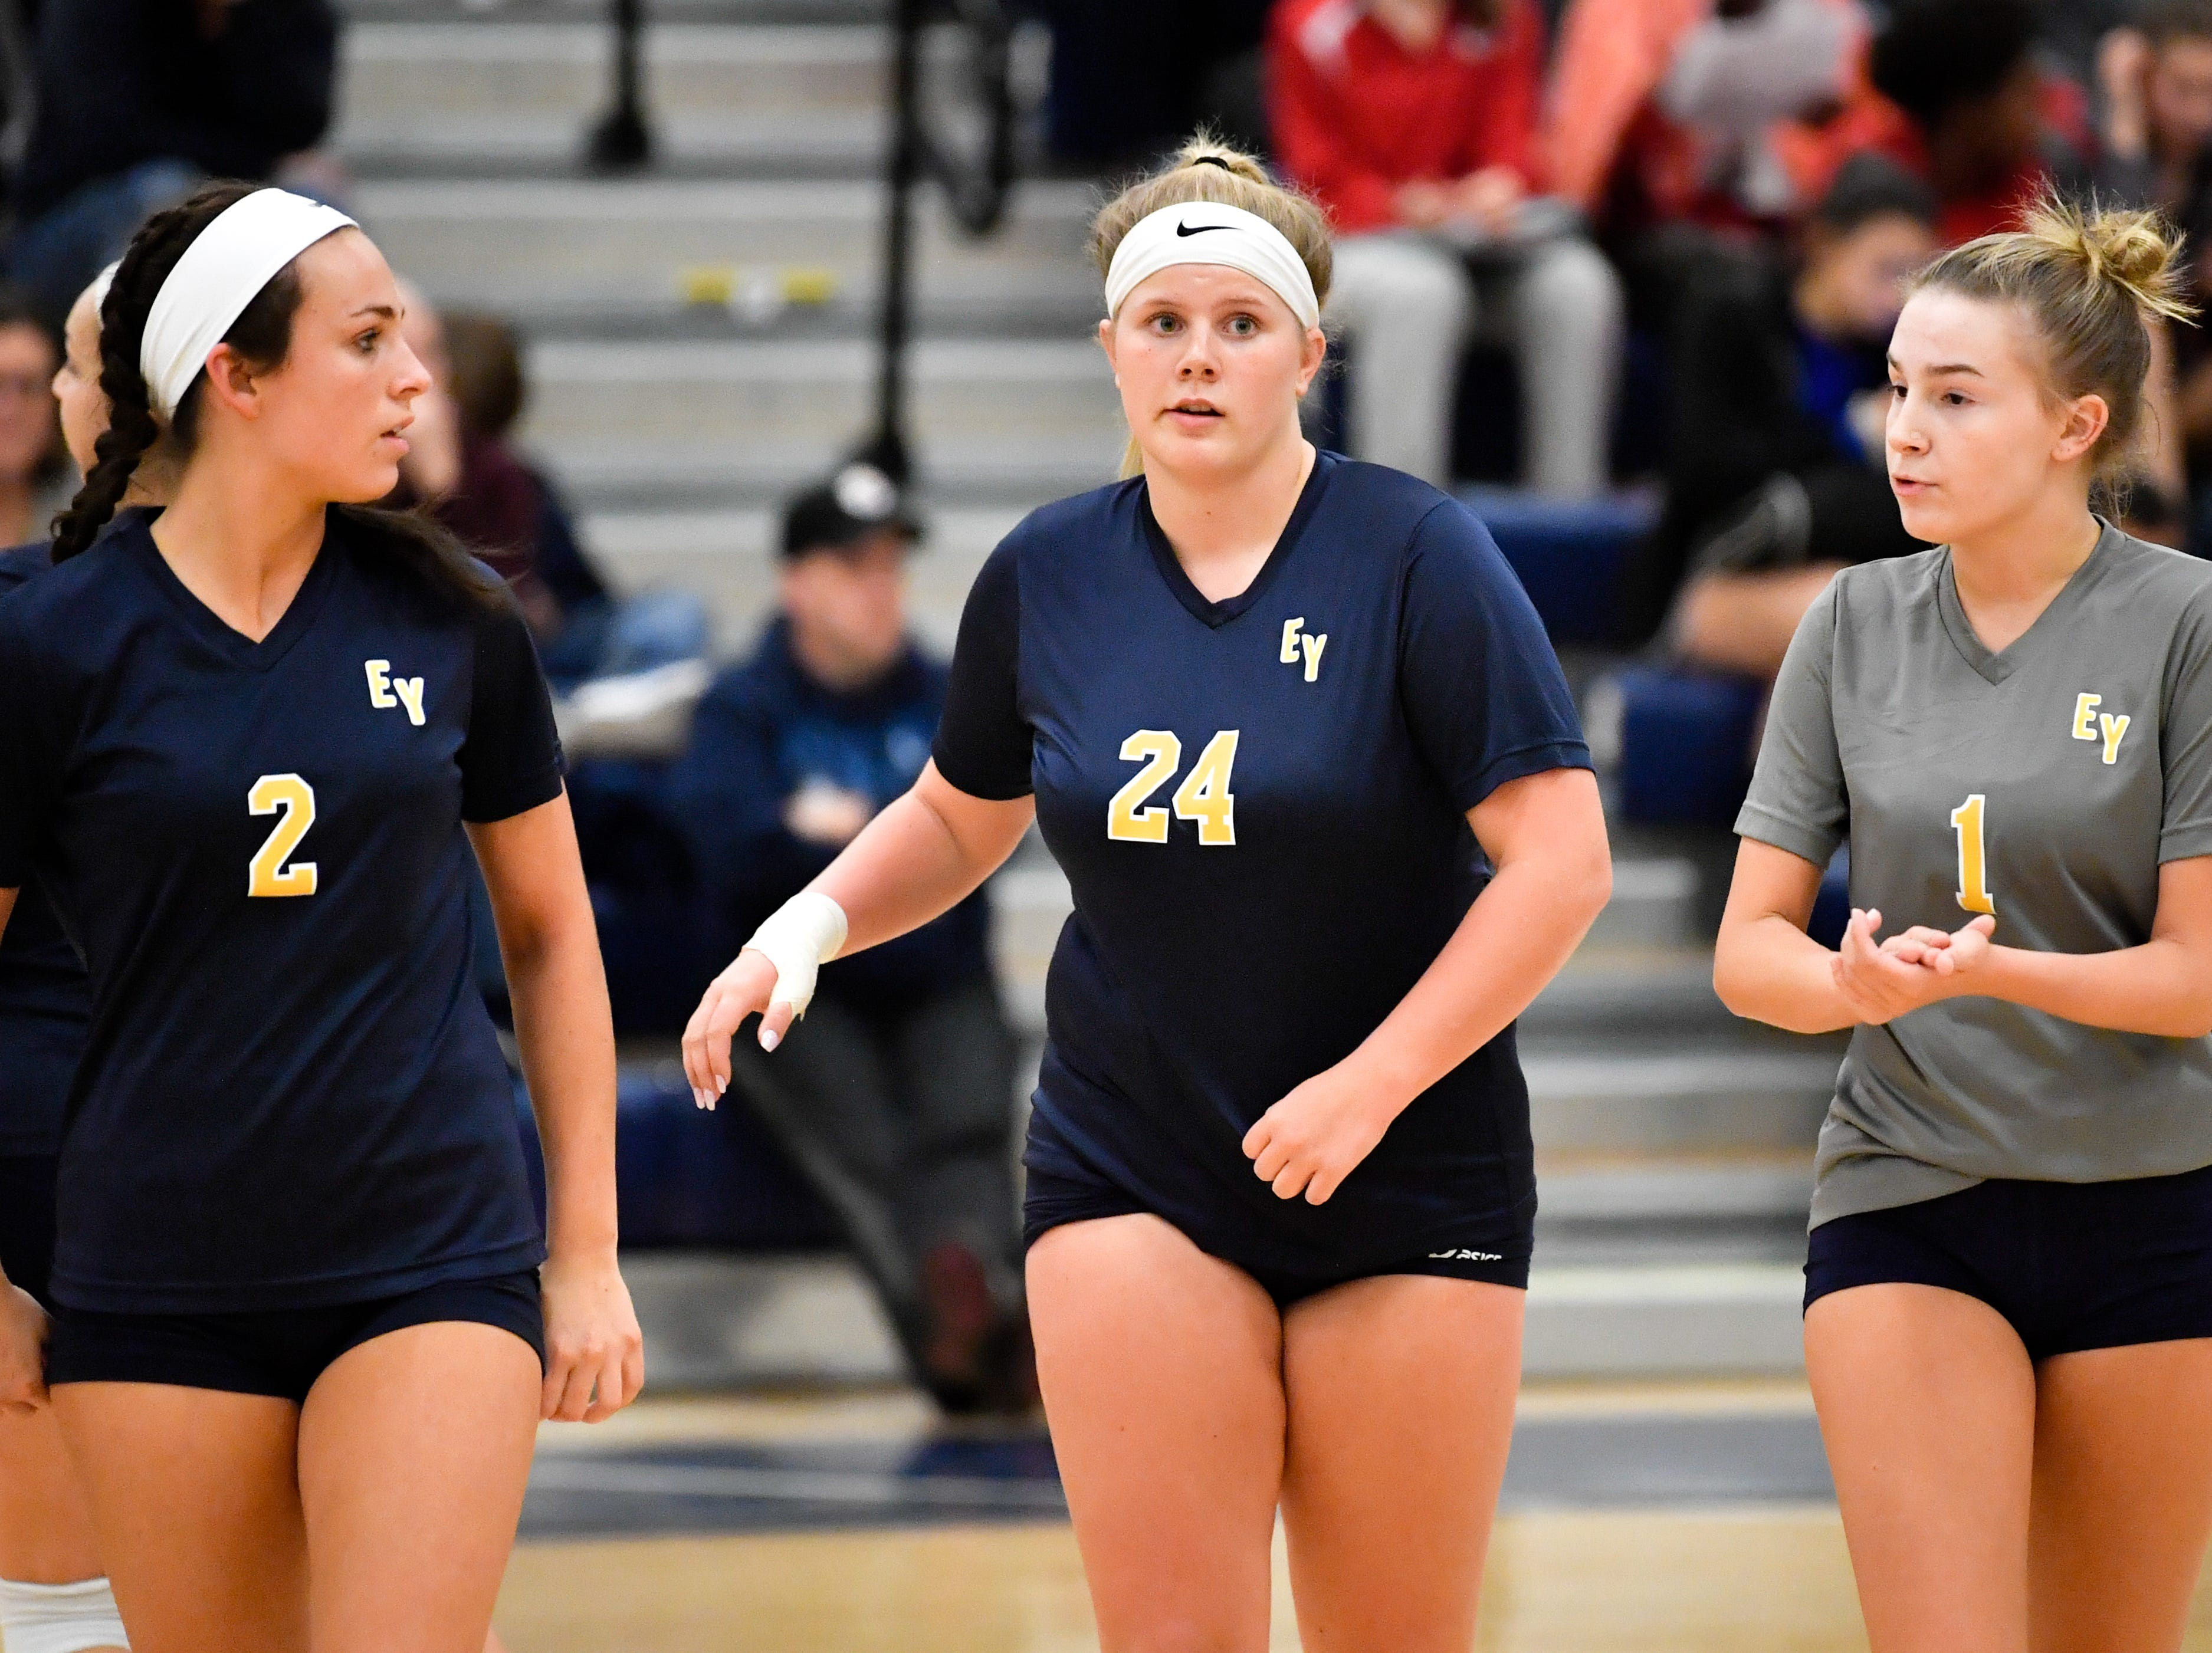 Morgan Dobbeck (2), Morgan Winter (24) and Olivia Koicuba (1) head to the bench for a timeout during the District 3 Class 3A girls' volleyball quarterfinals between West York and Eastern York at West York High School, October 30, 2018. The Bulldogs defeated the Golden Knights 3-0.